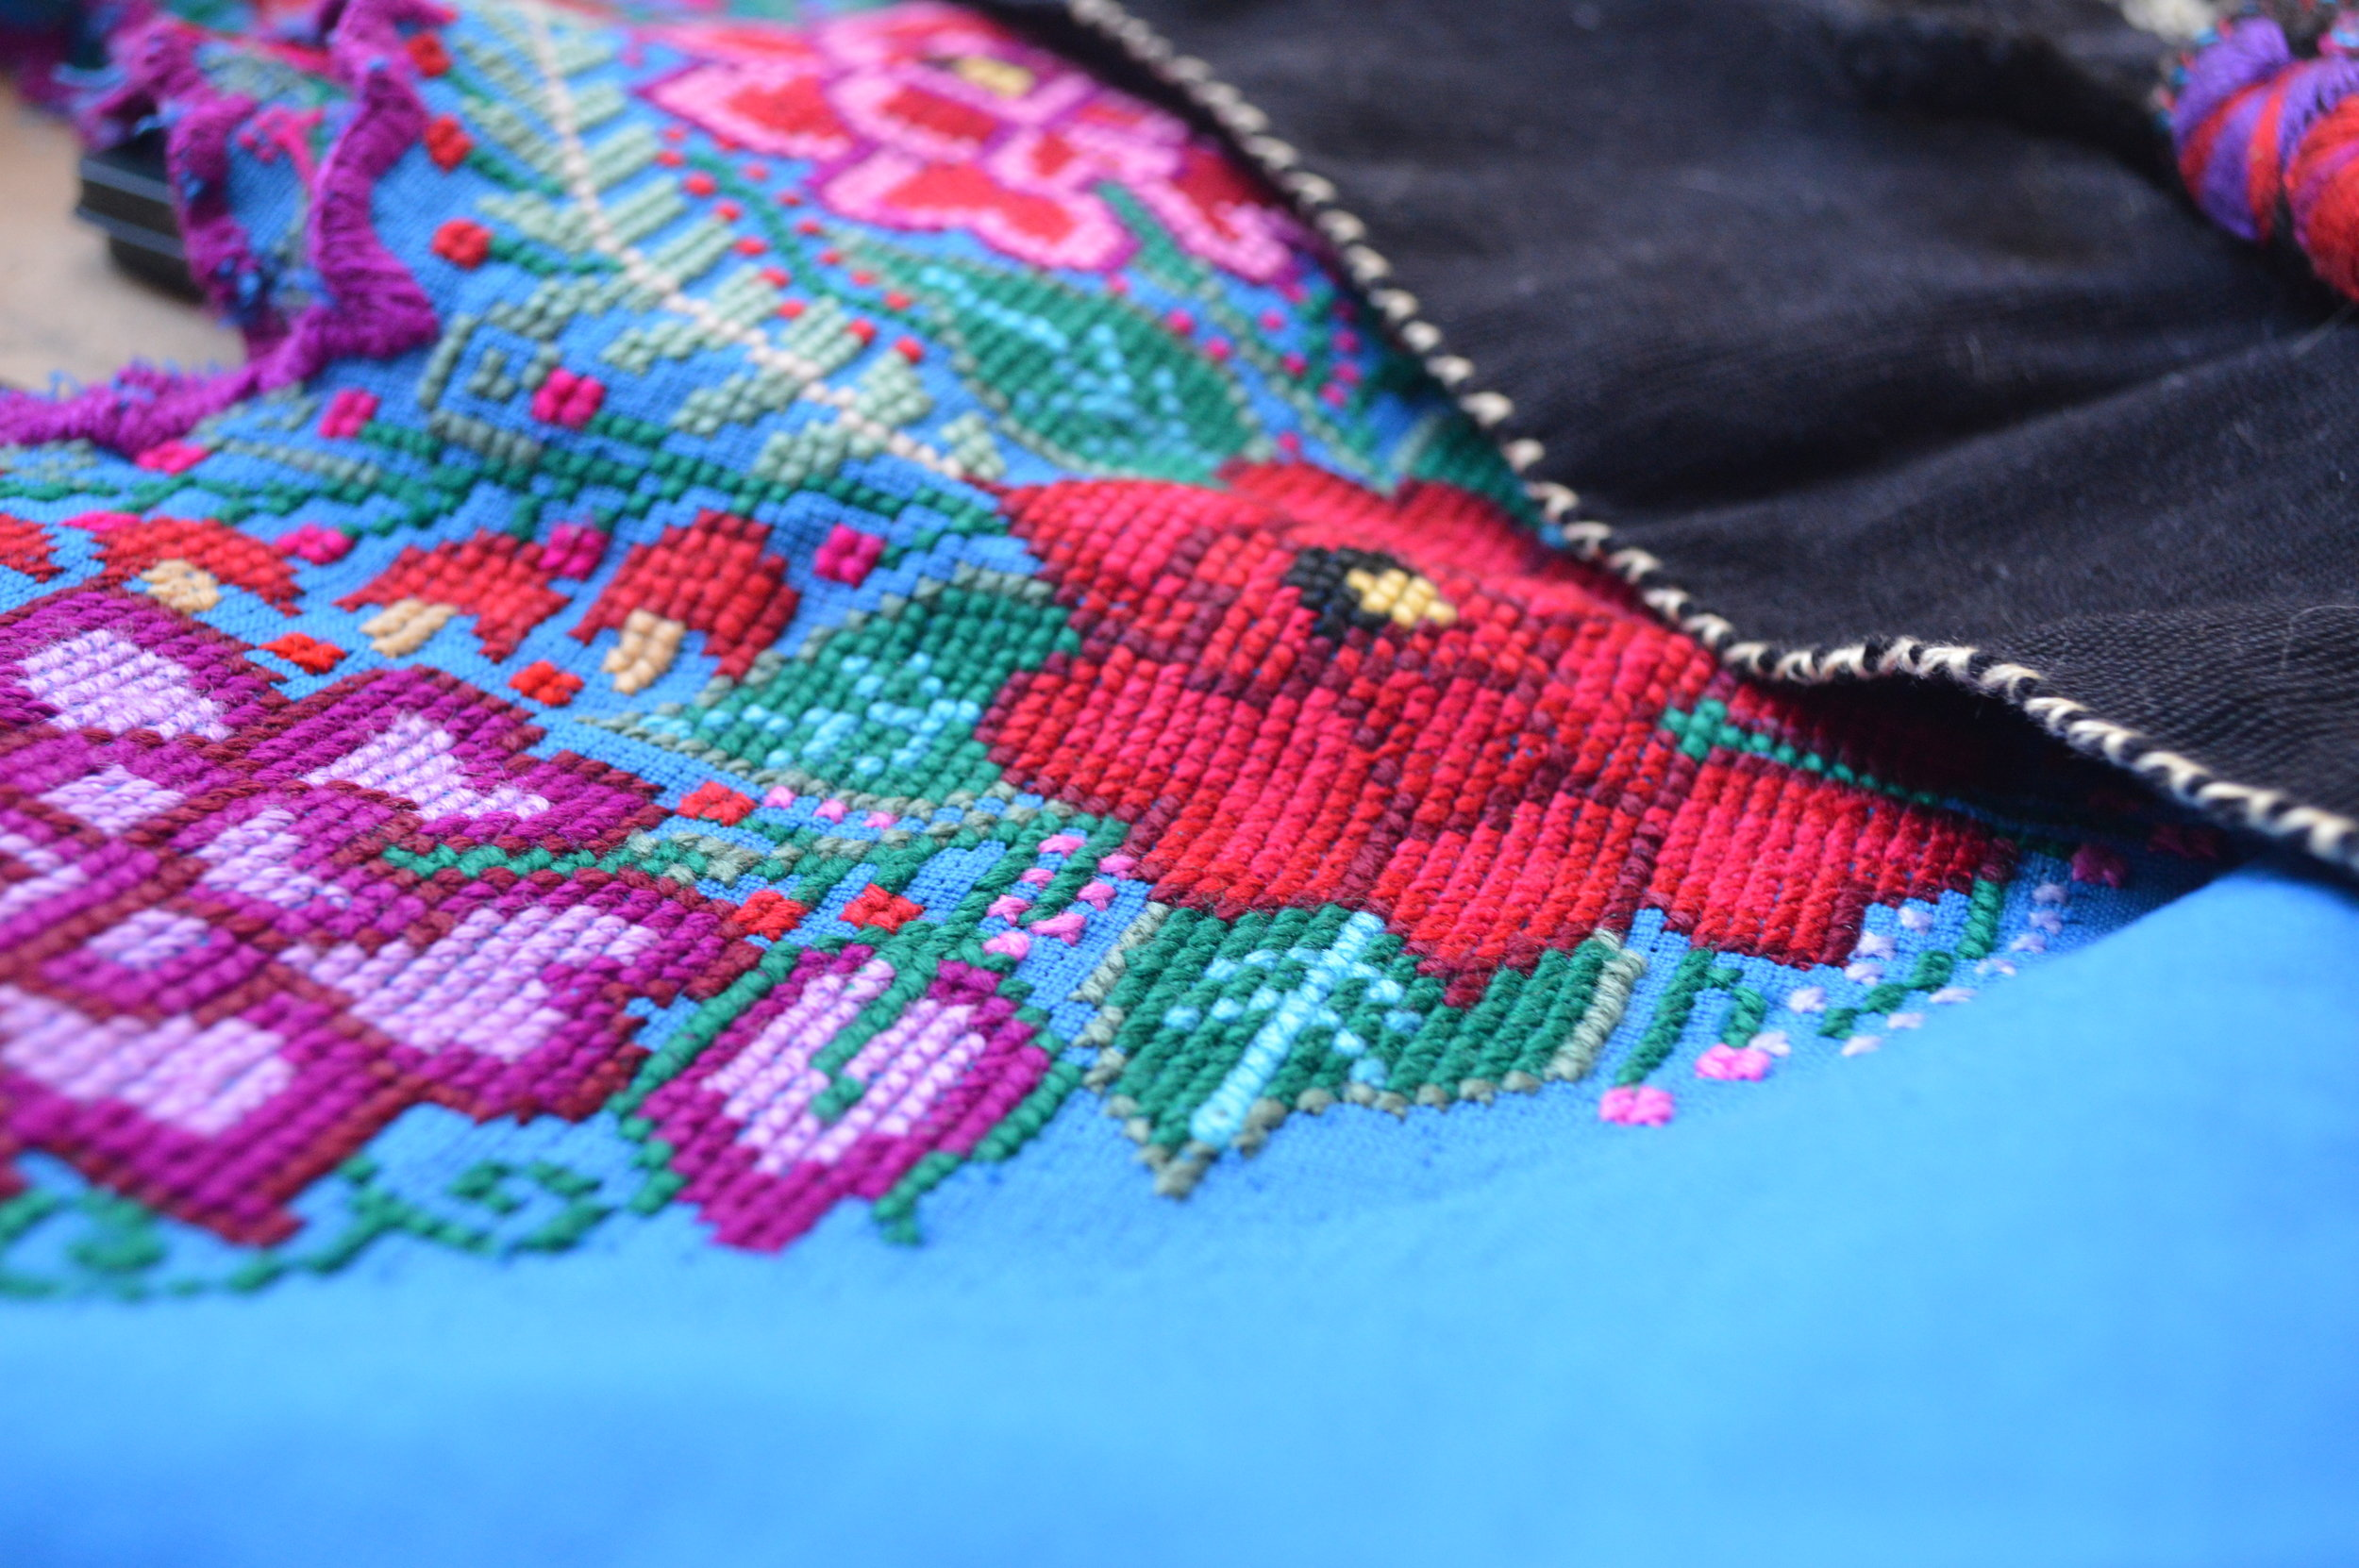 Details of the handiwork of a Chiapas blouse.